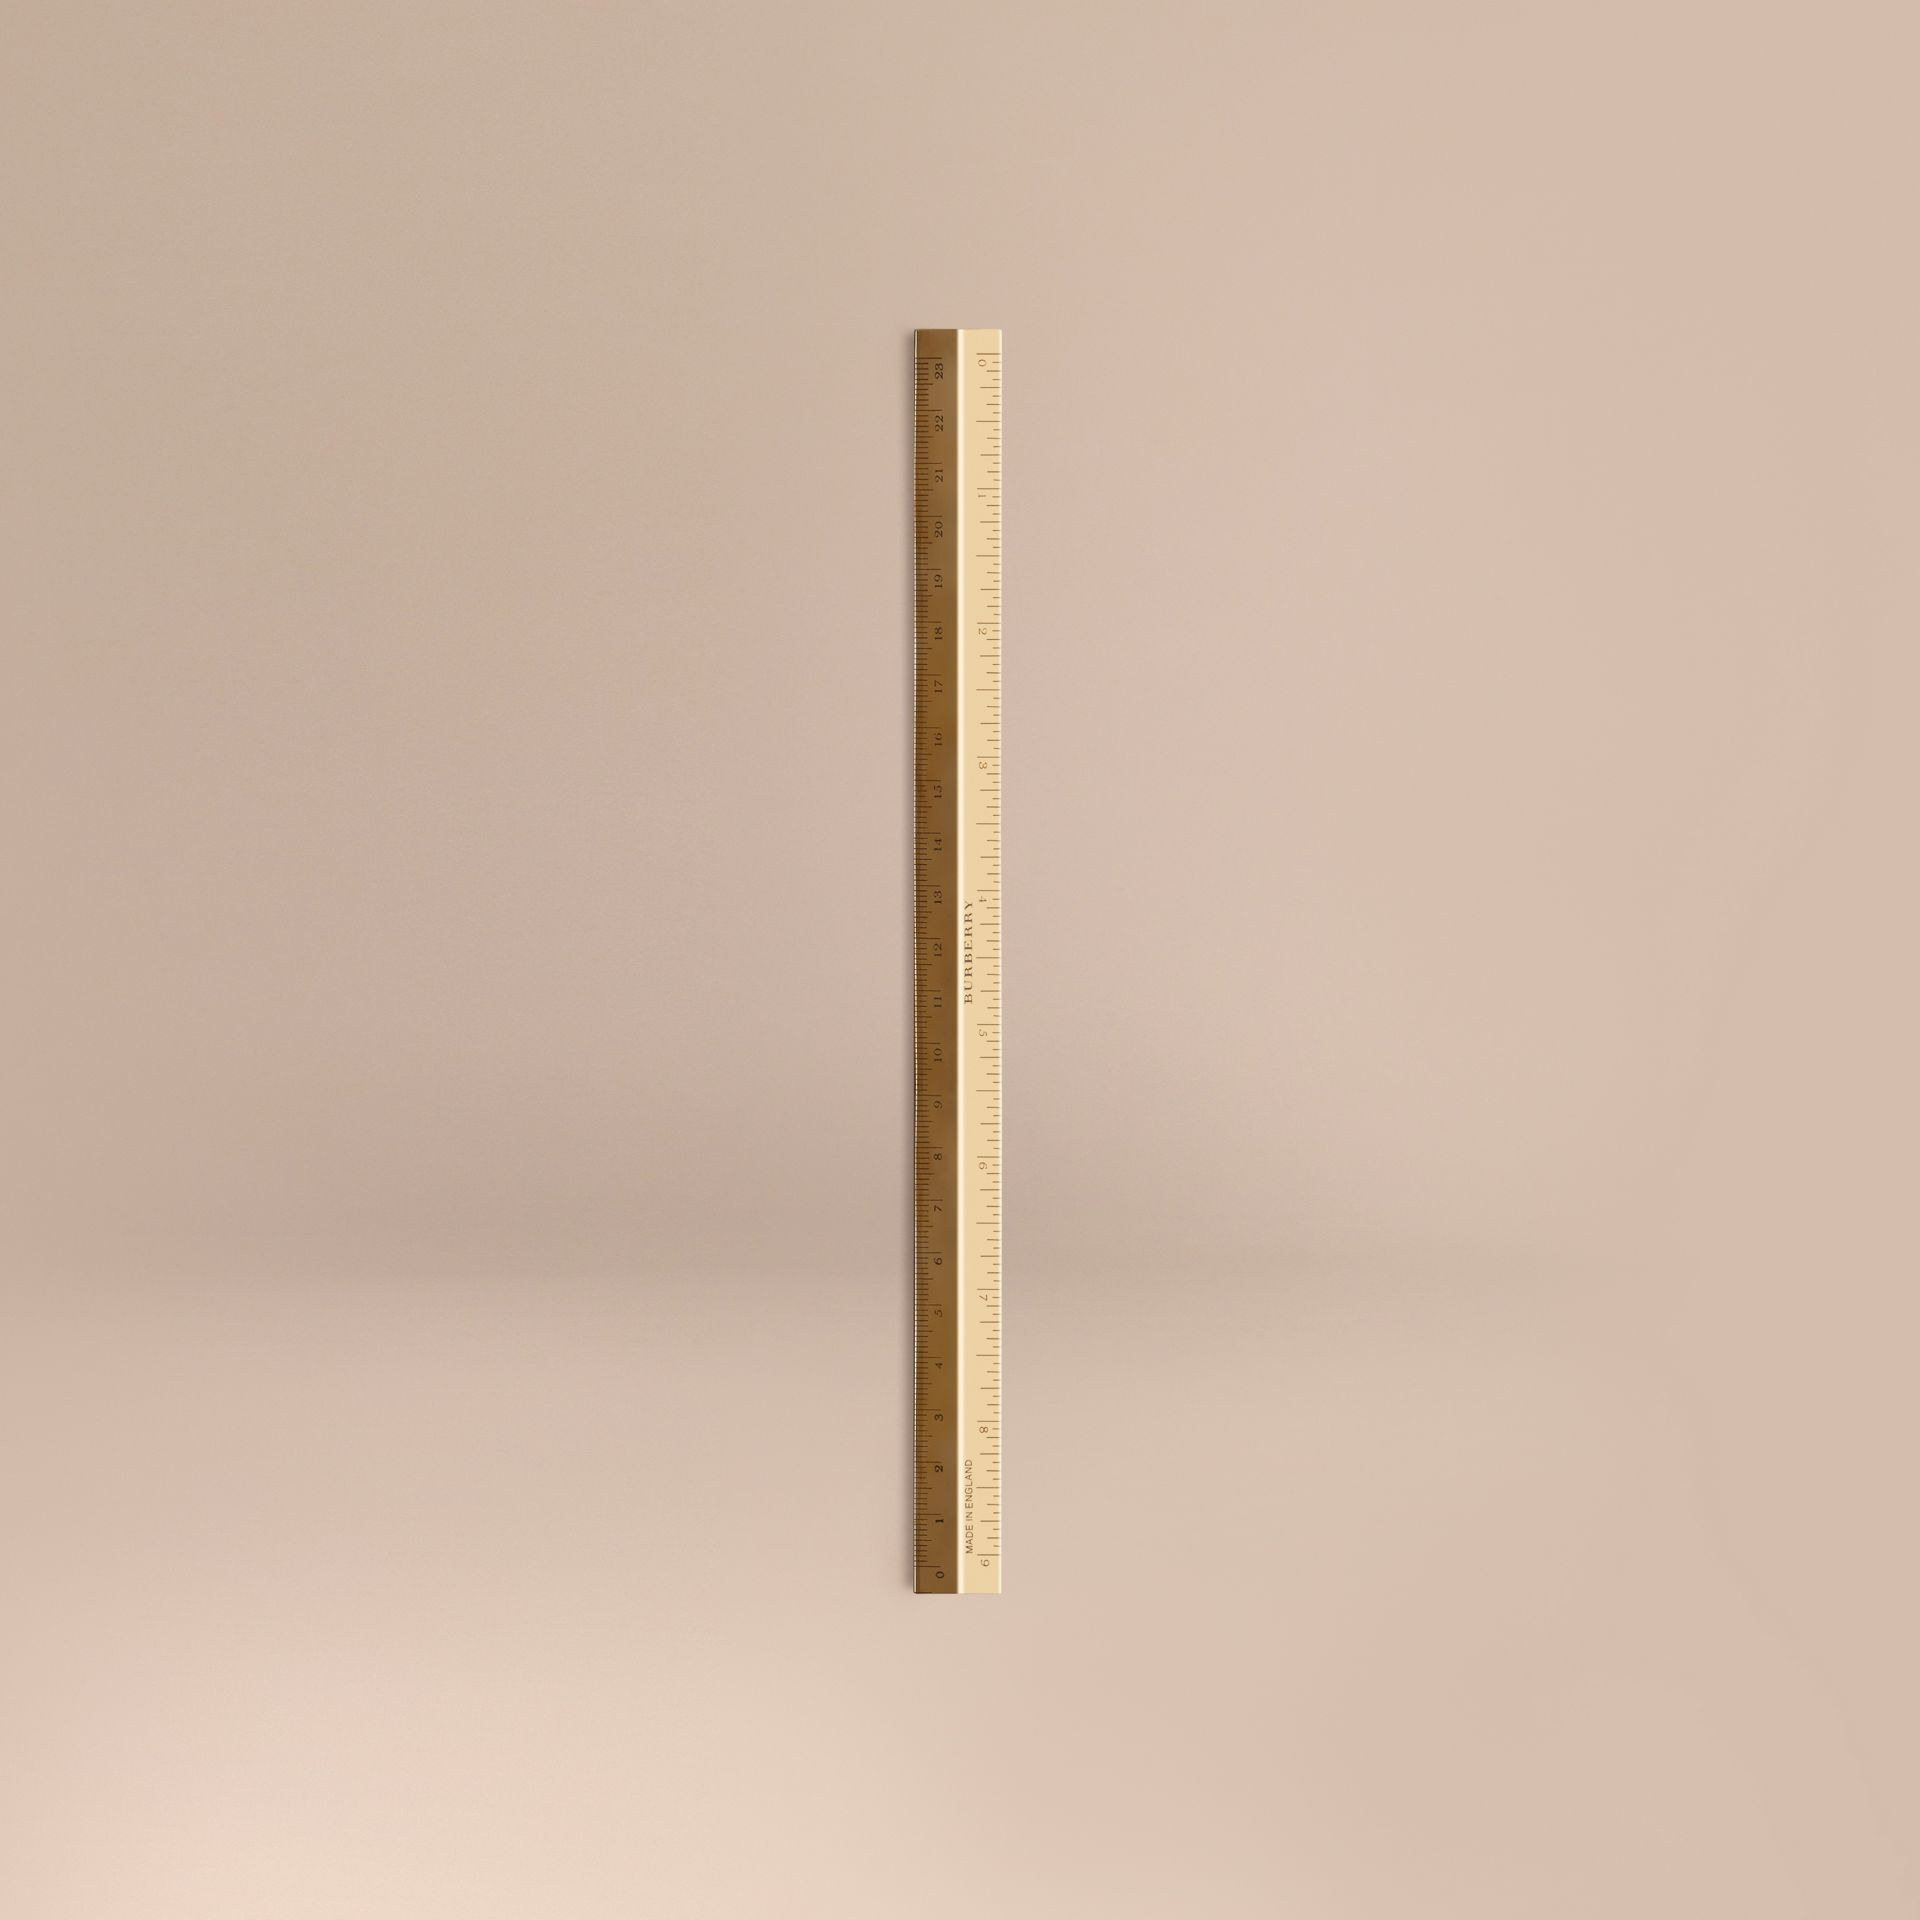 Brass Ruler - gallery image 1